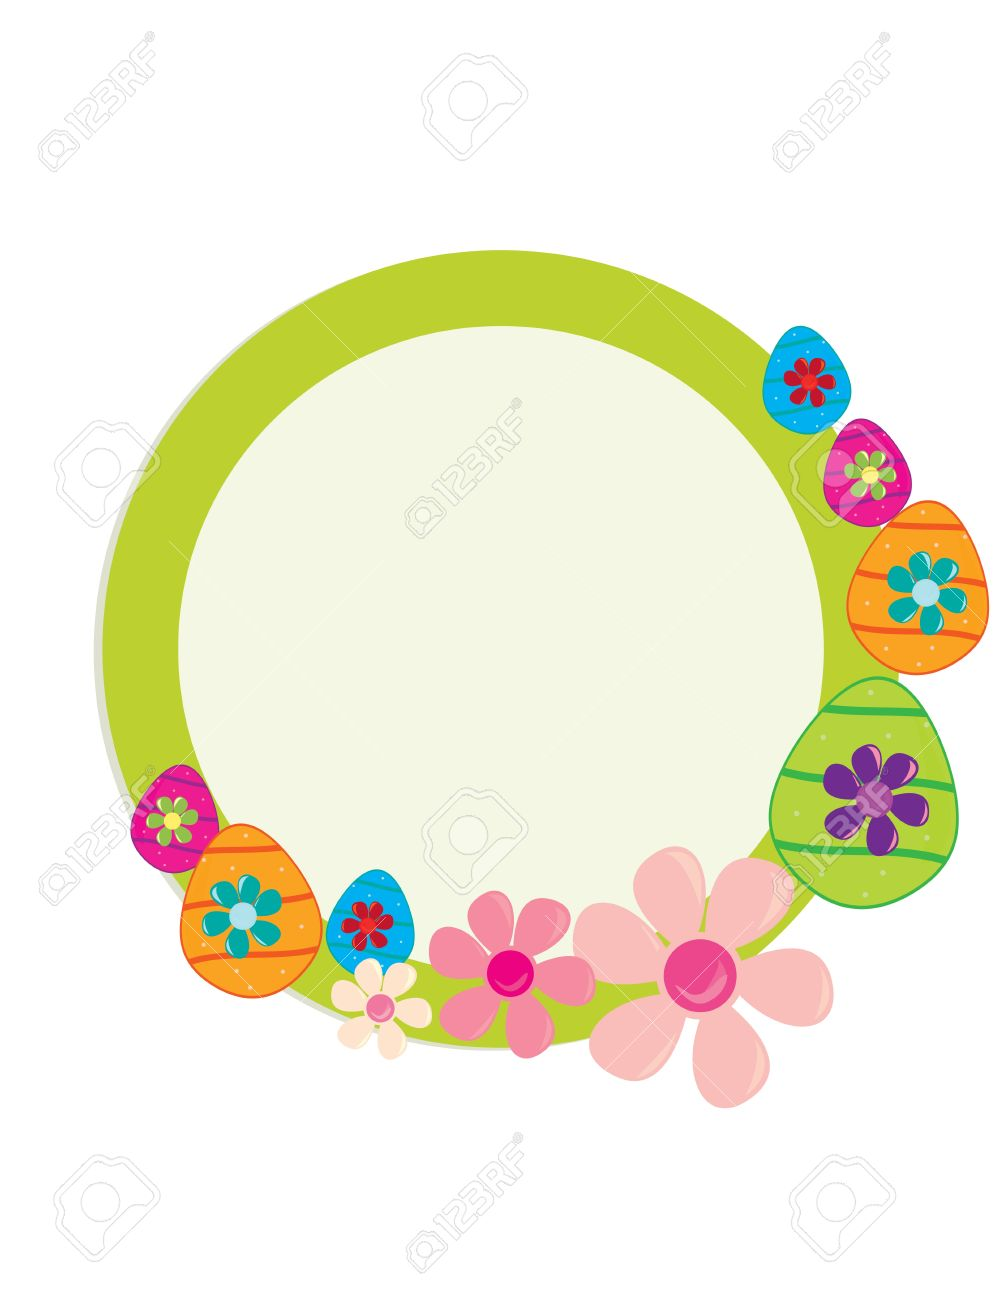 Green circular frame with Easter eggs and flowers on a white background Stock Vector - 7315105